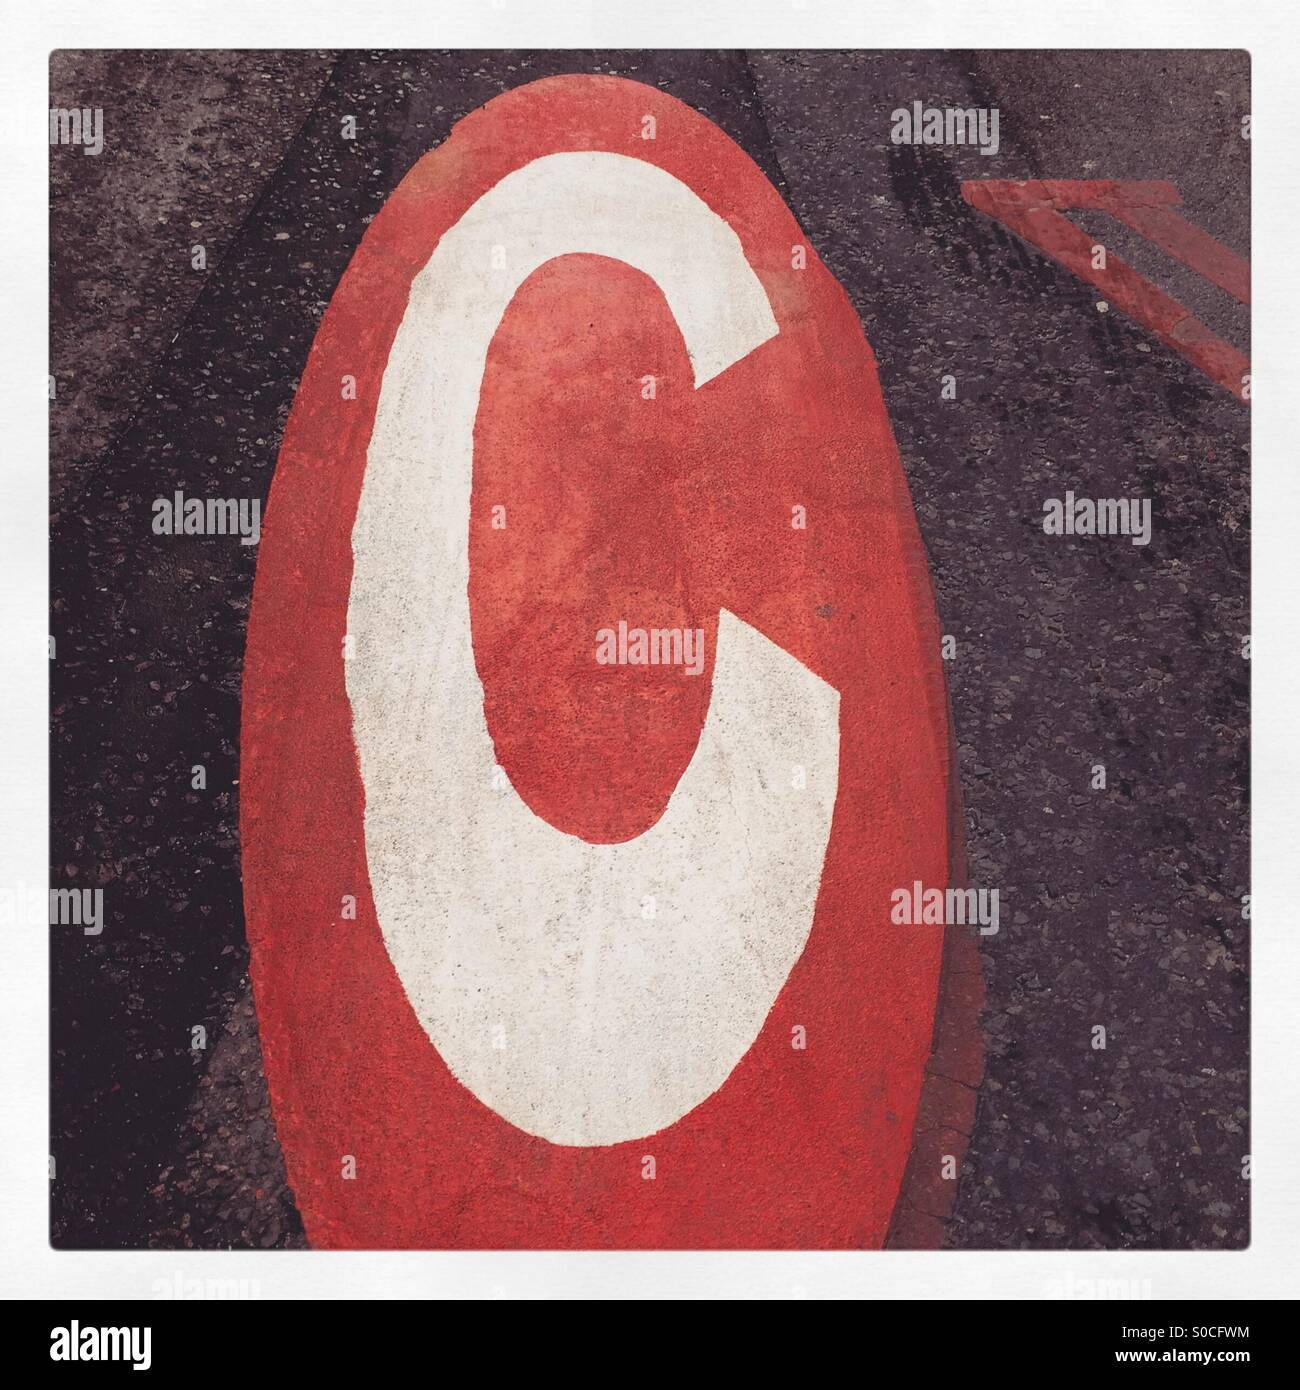 A congestion zone sign on the road - Stock Image